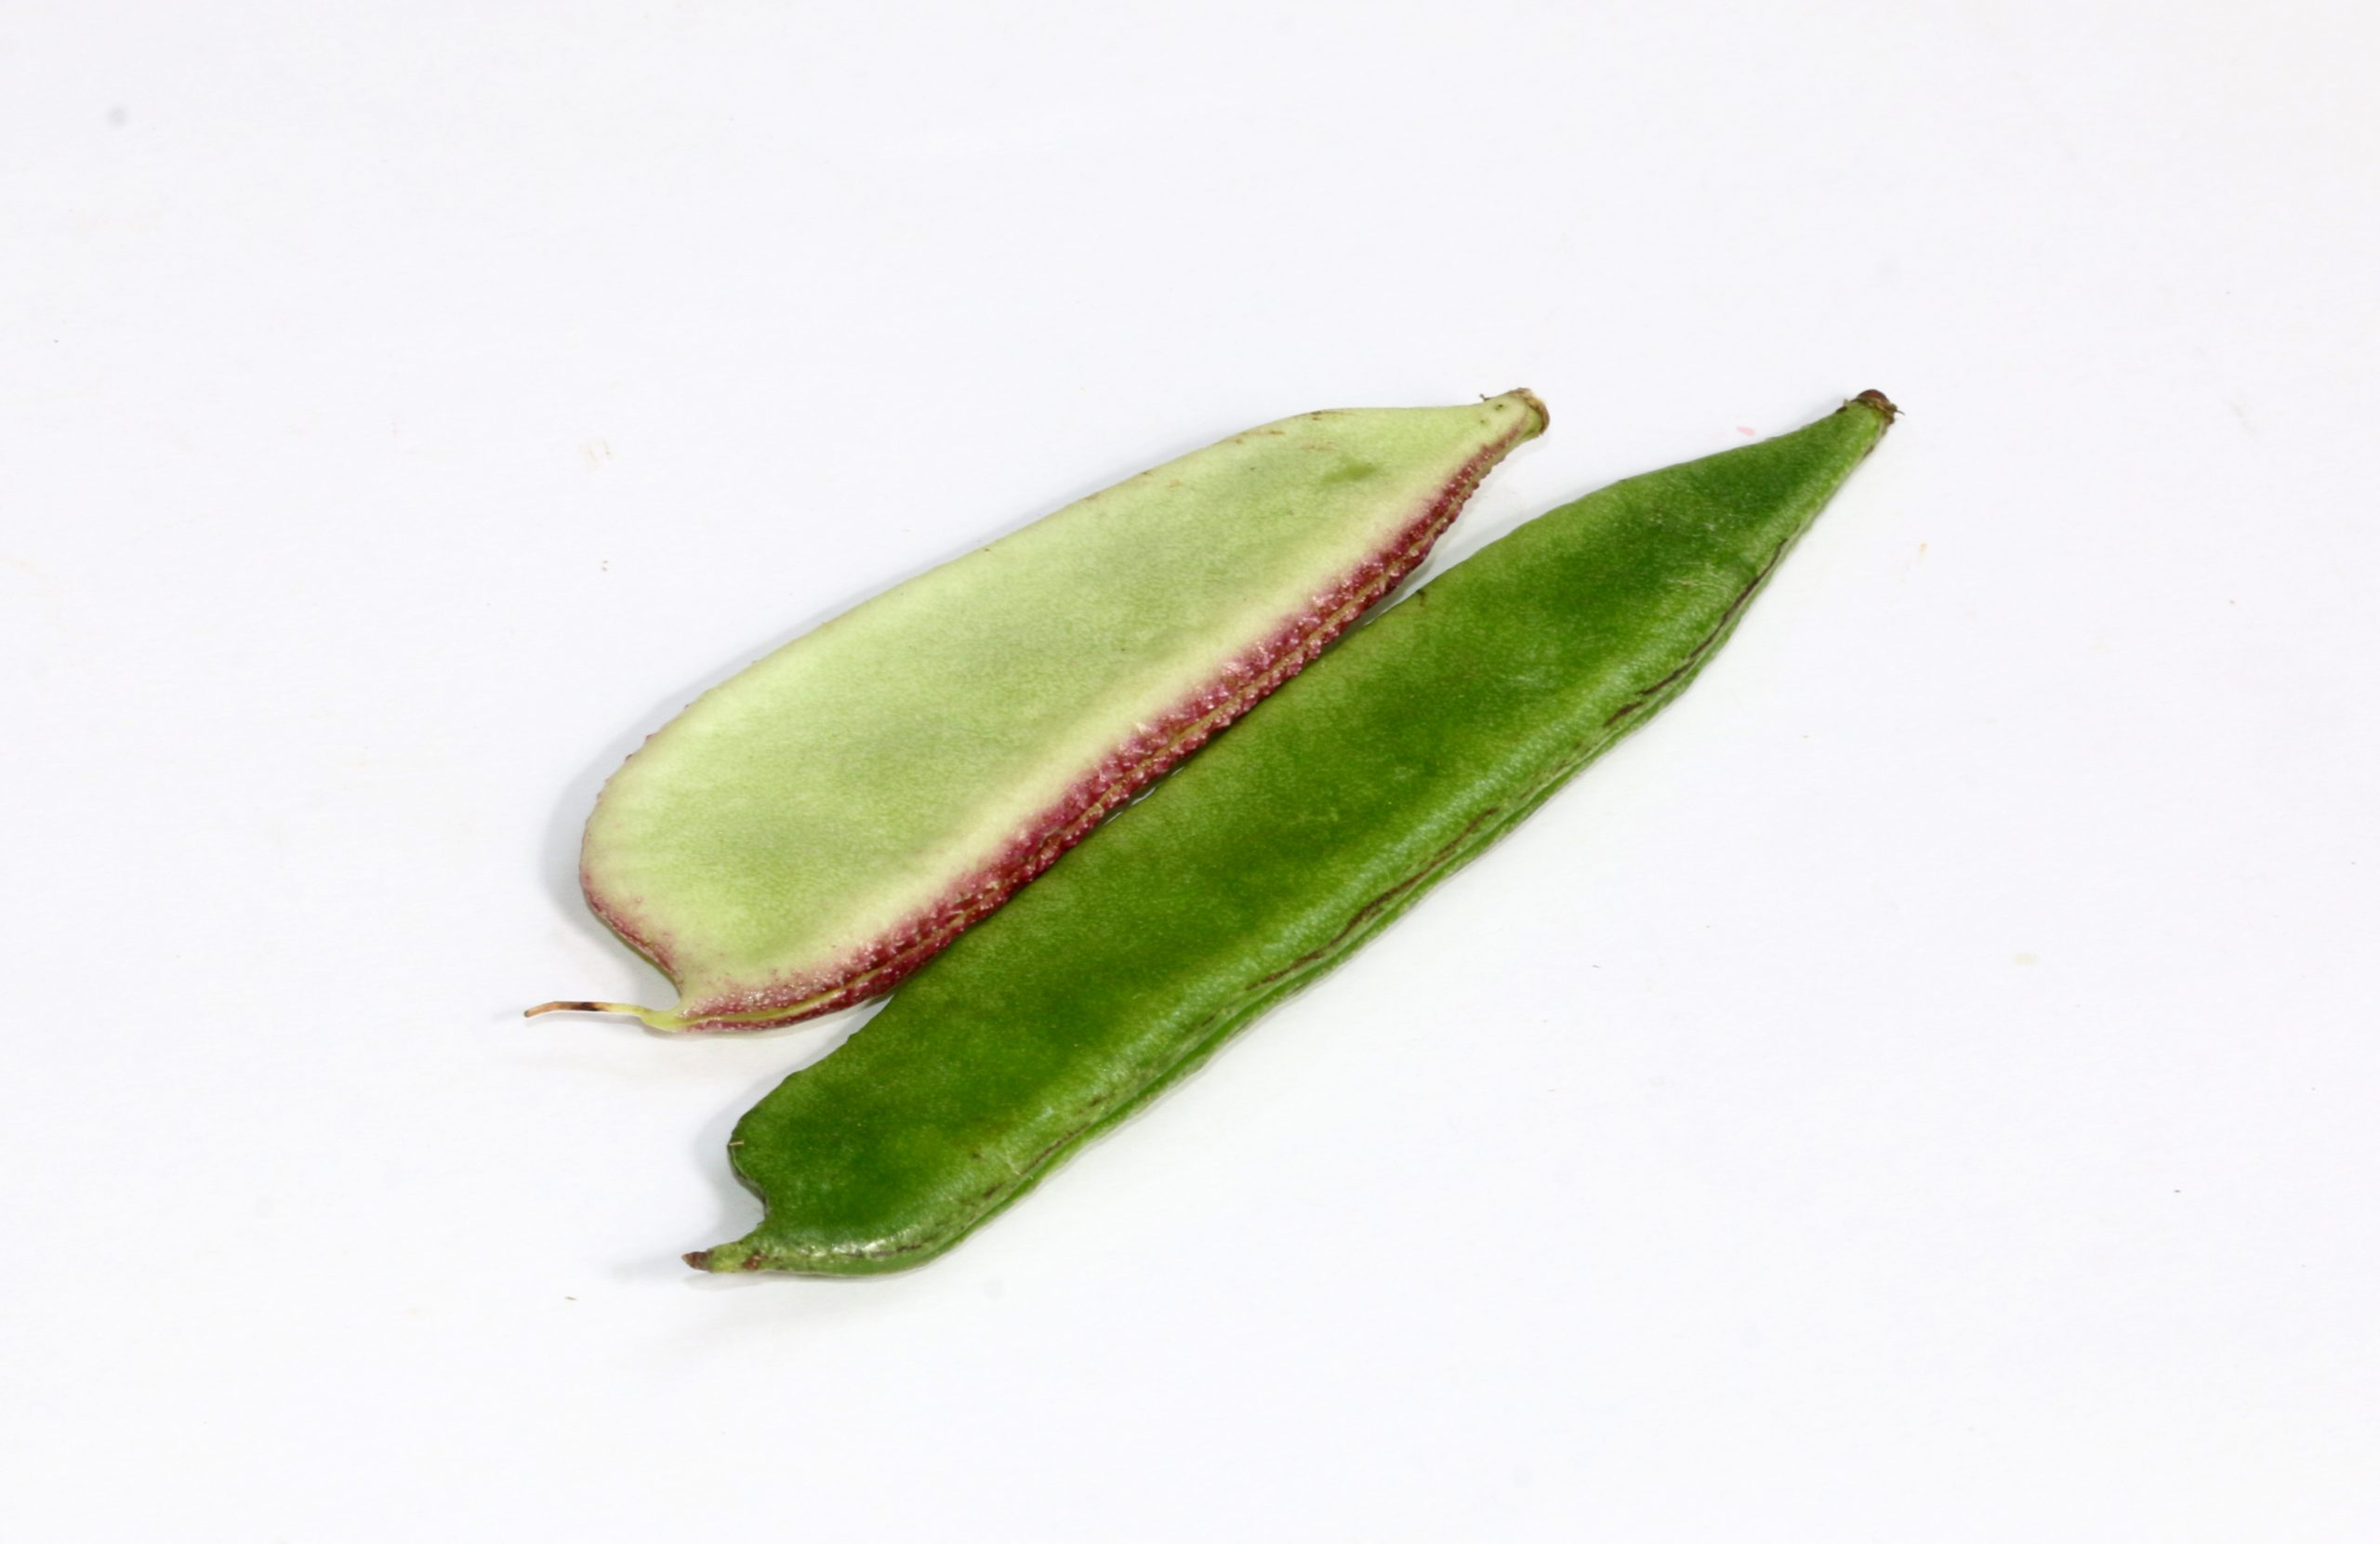 Green bean in white background